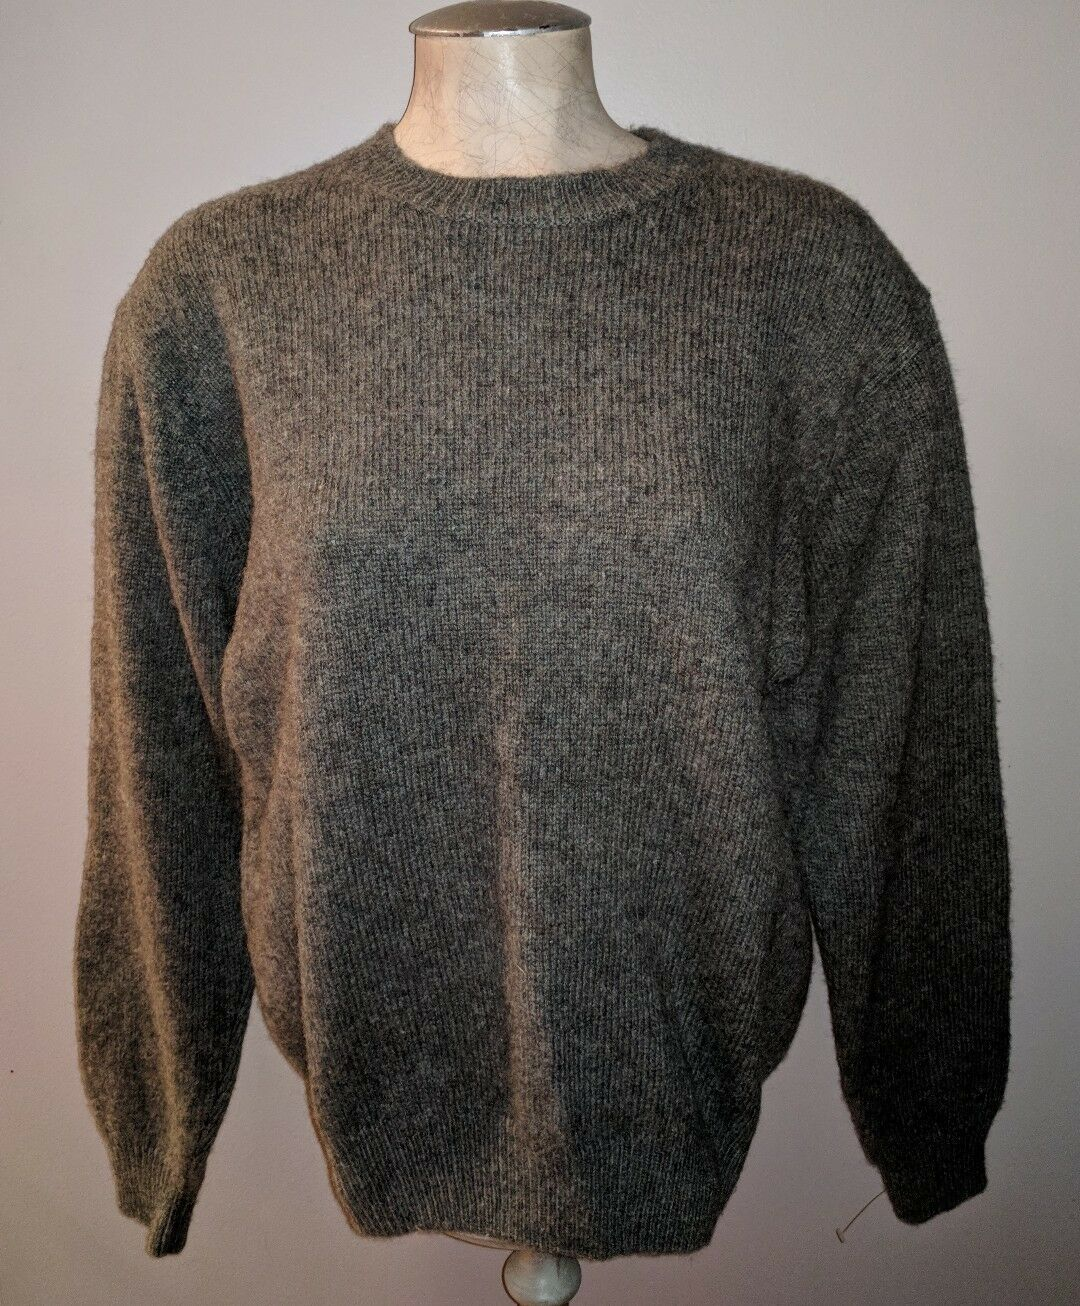 CABELAS WOOL MOSS GREEN  HUNTING OUTDOORS HIKING SWEATER MENS M OUTDOOR GEAR  comfortably